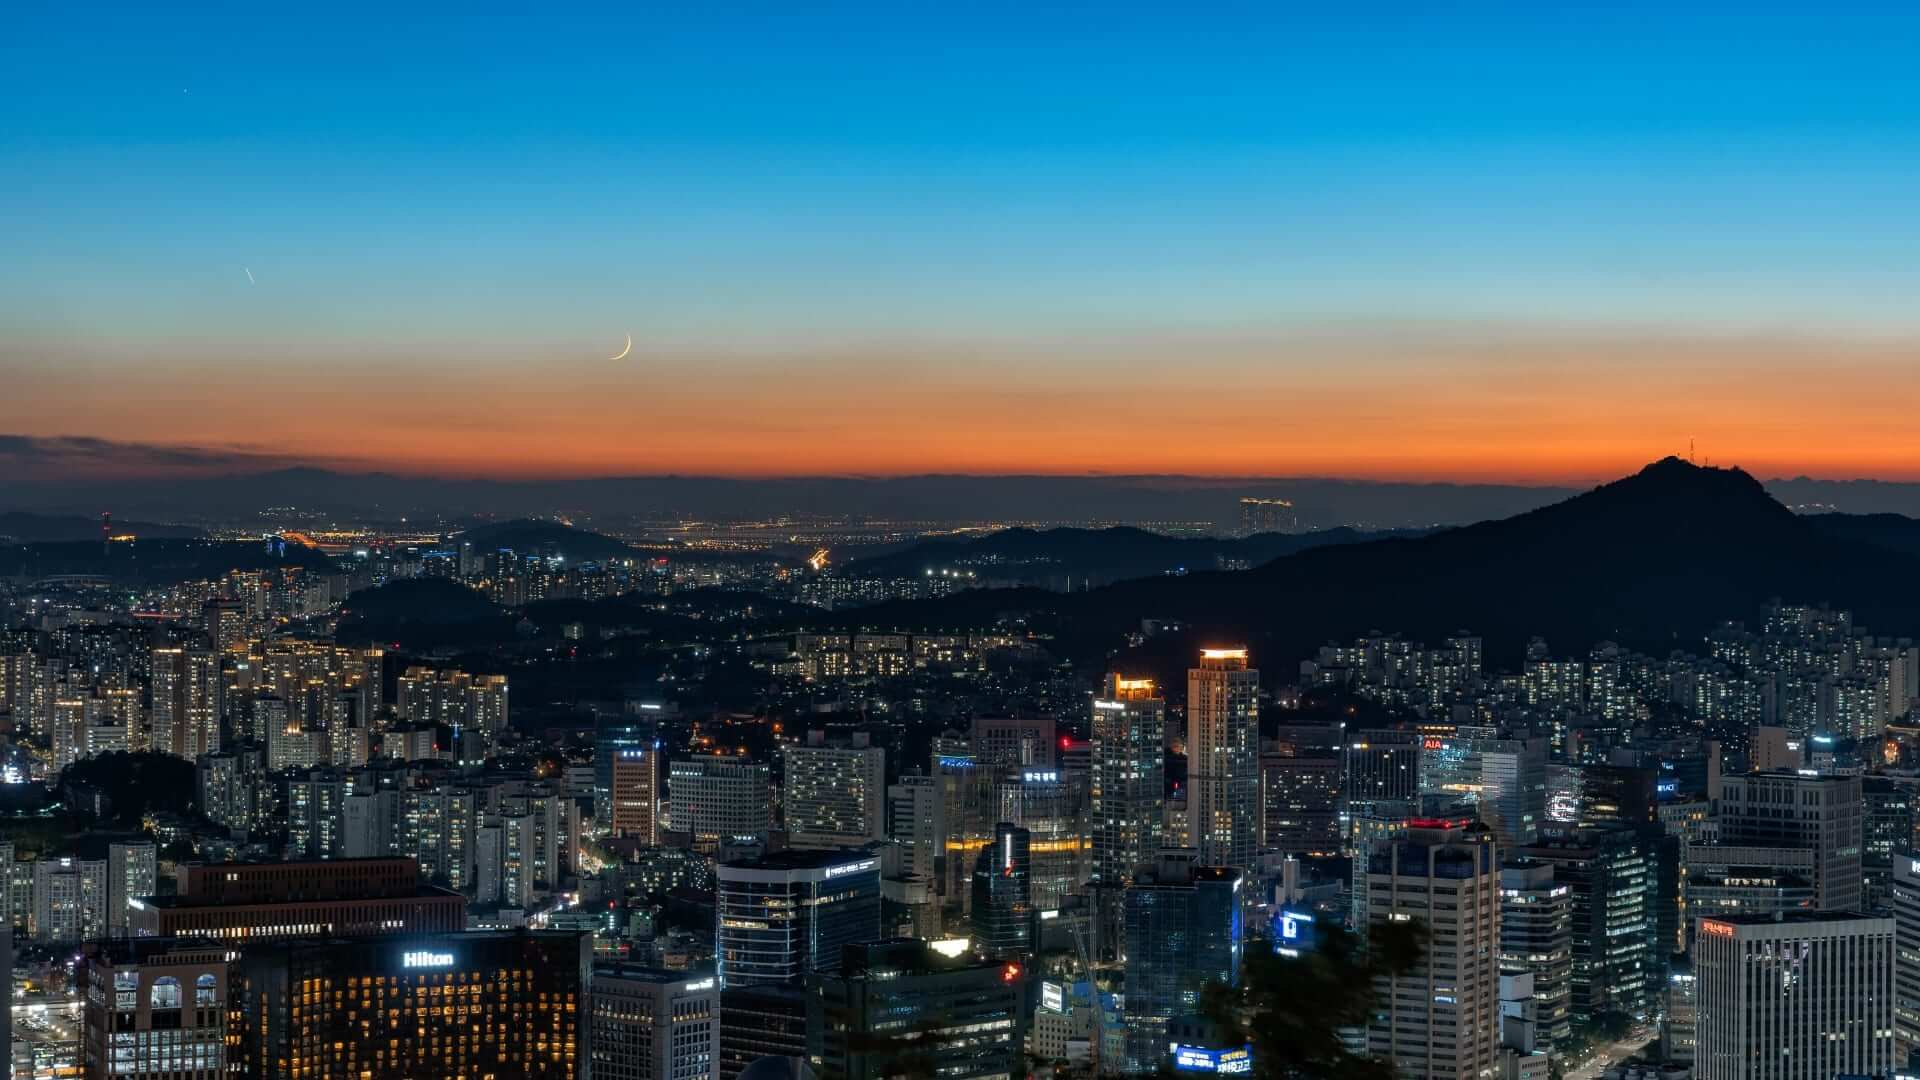 High illuminated buildings in front of a mountain during sunset in Seoul.